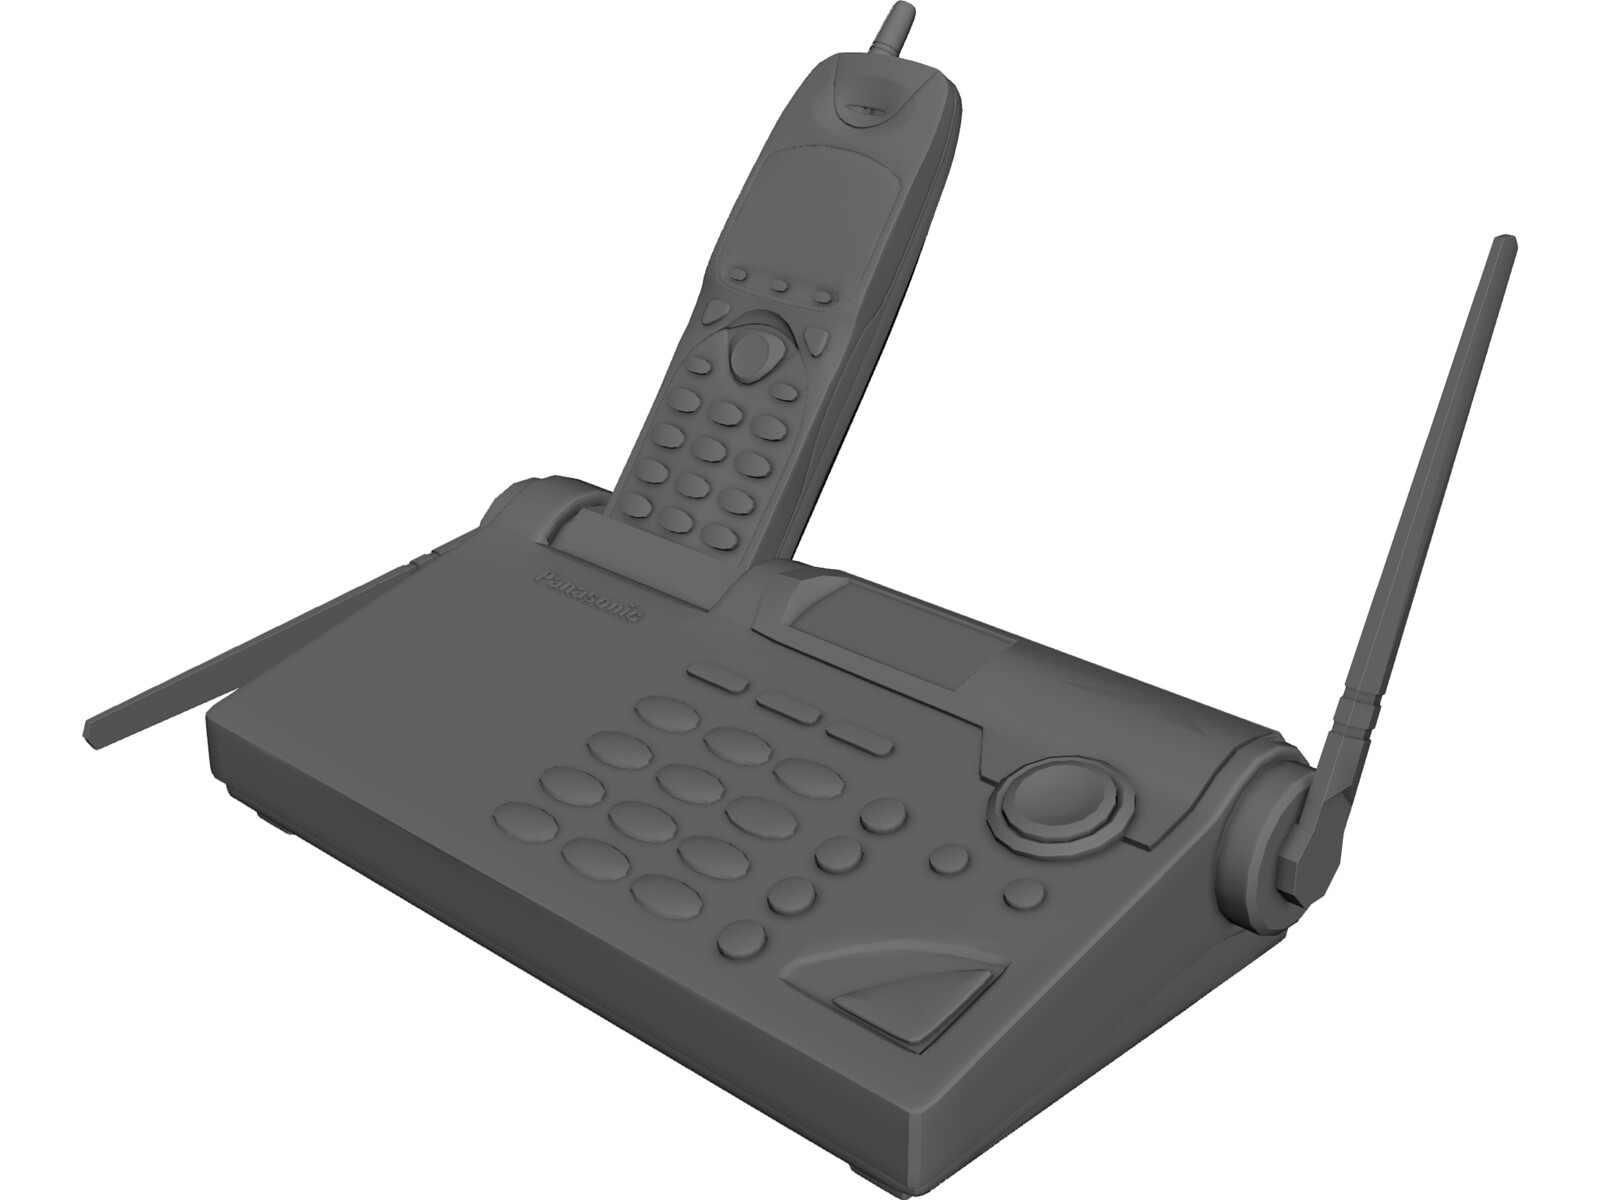 Phone Panasonic 3D Model